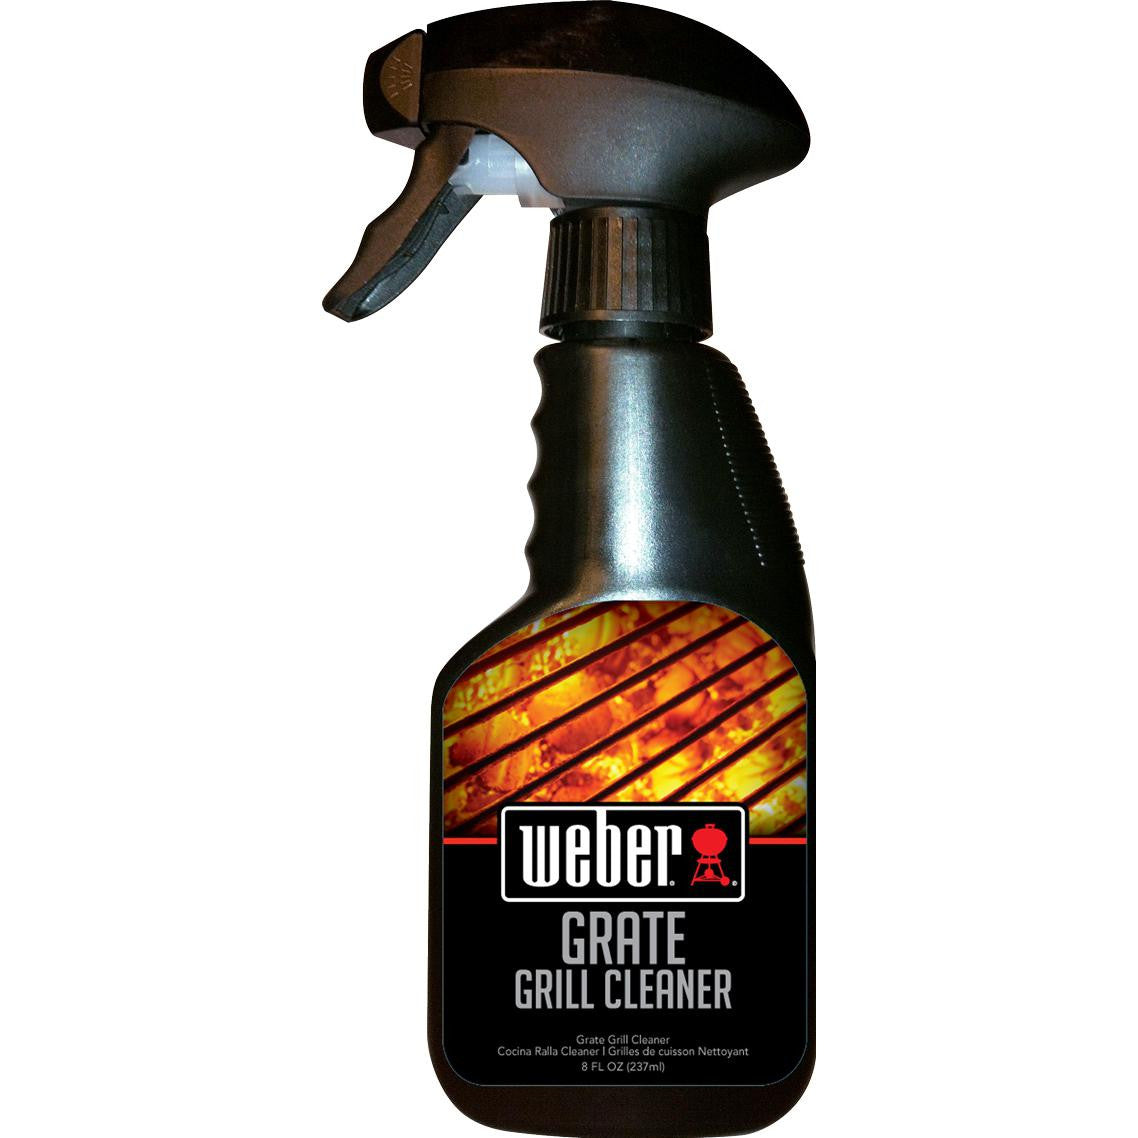 Weber Grate Grill Cleaner - 8 Oz.